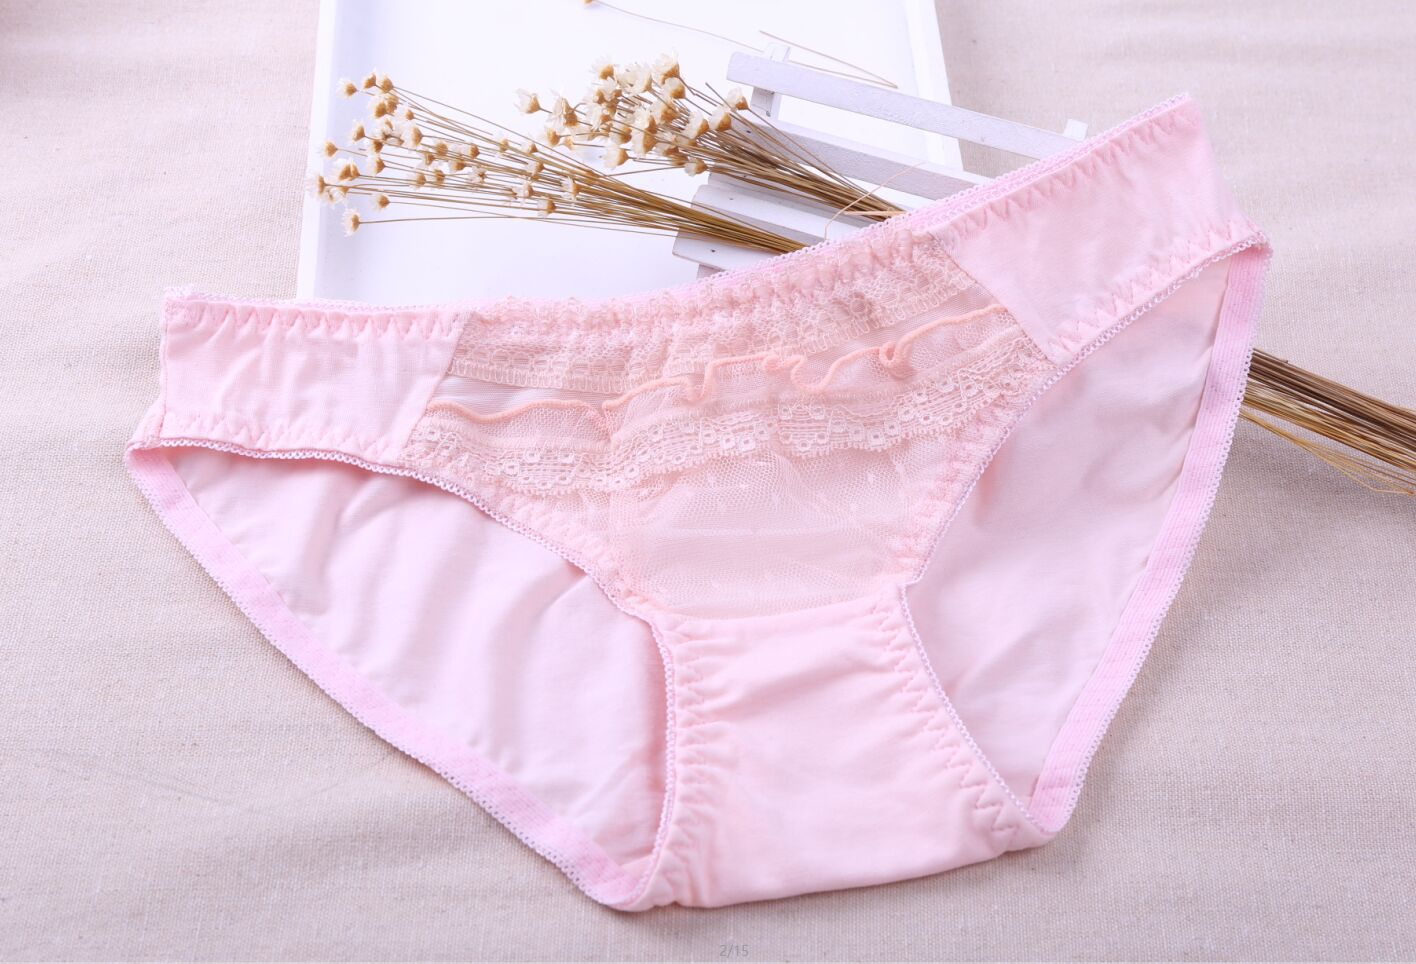 Hot sale women comfortable lady cotton underwear lace panties sexy g-string sexy lingerie